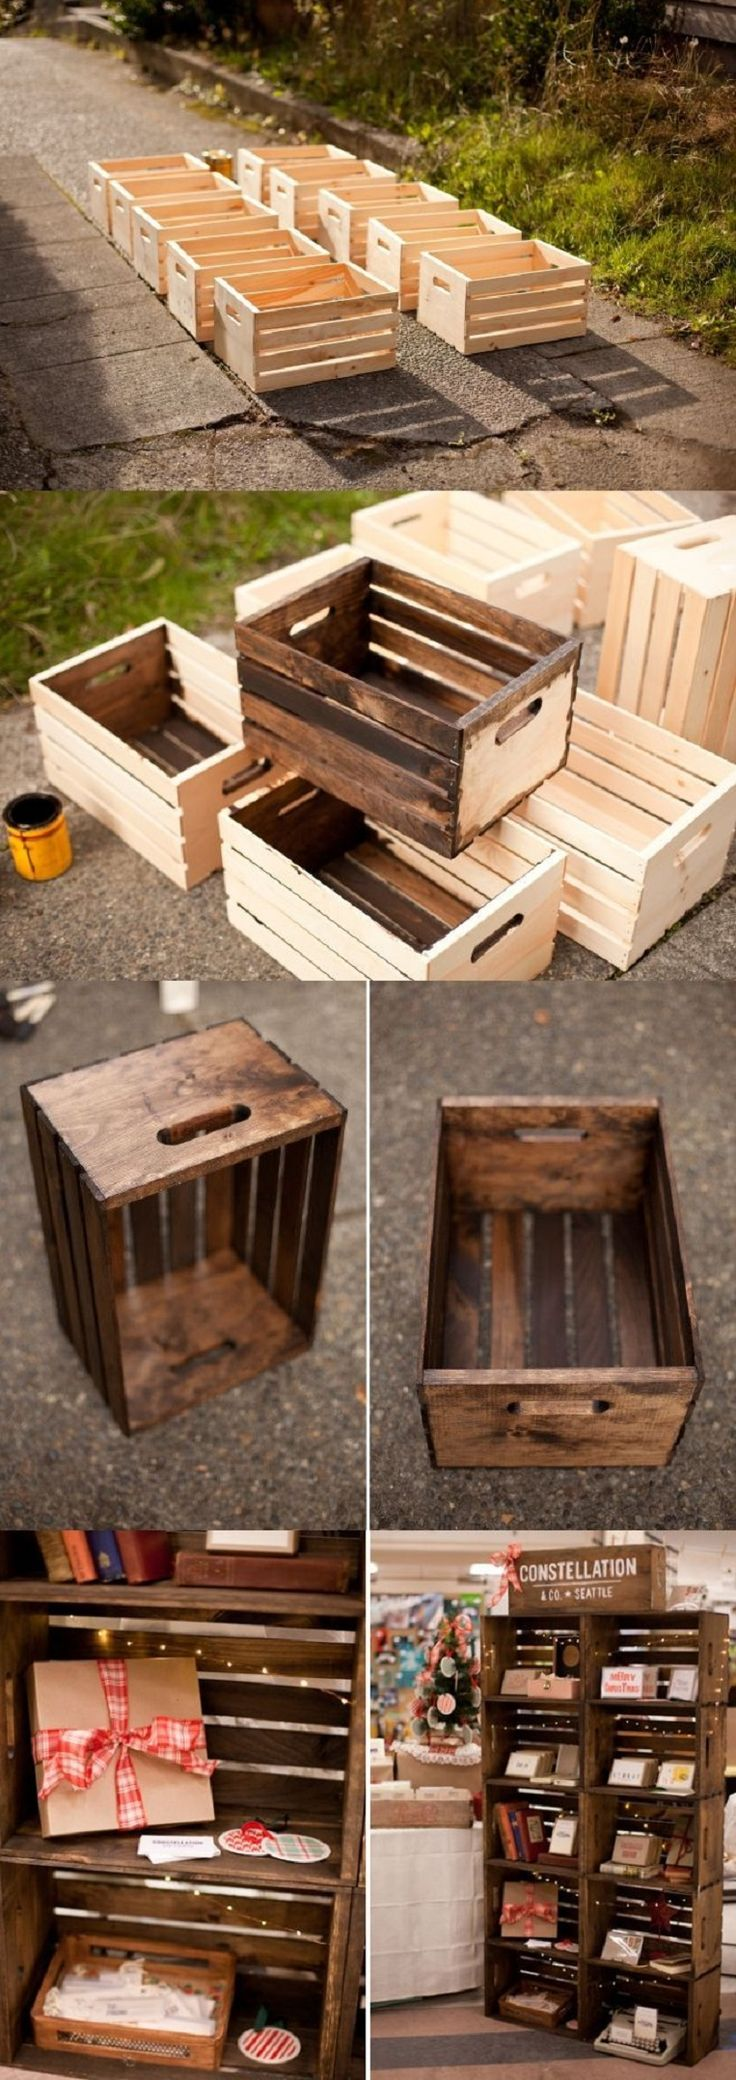 Apple Crates Display Case - 14 Originally Repurposed Furniture Tutorials | GleamItUp